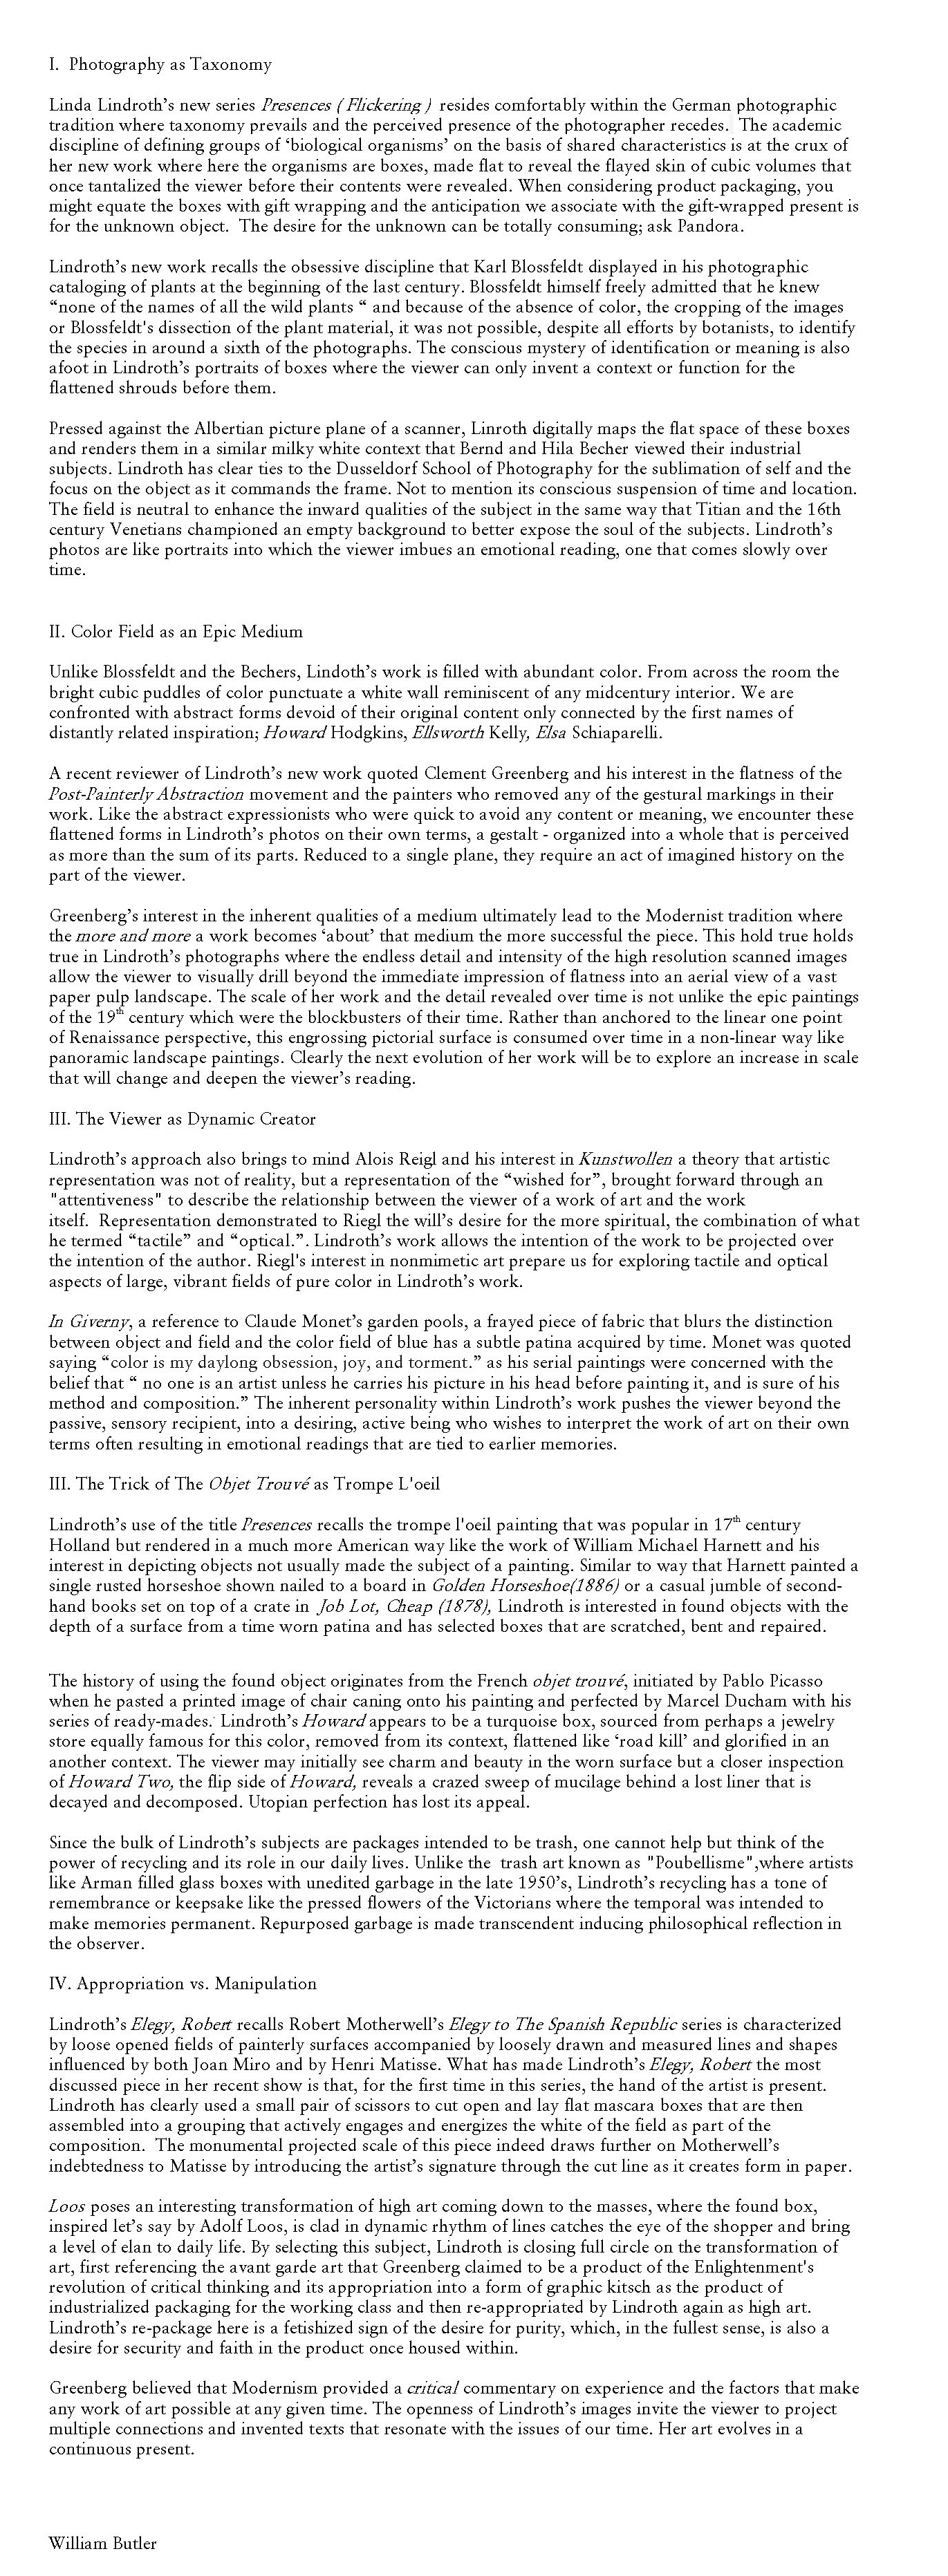 Lindroth_Guggenheim_141210_edited_Page_1